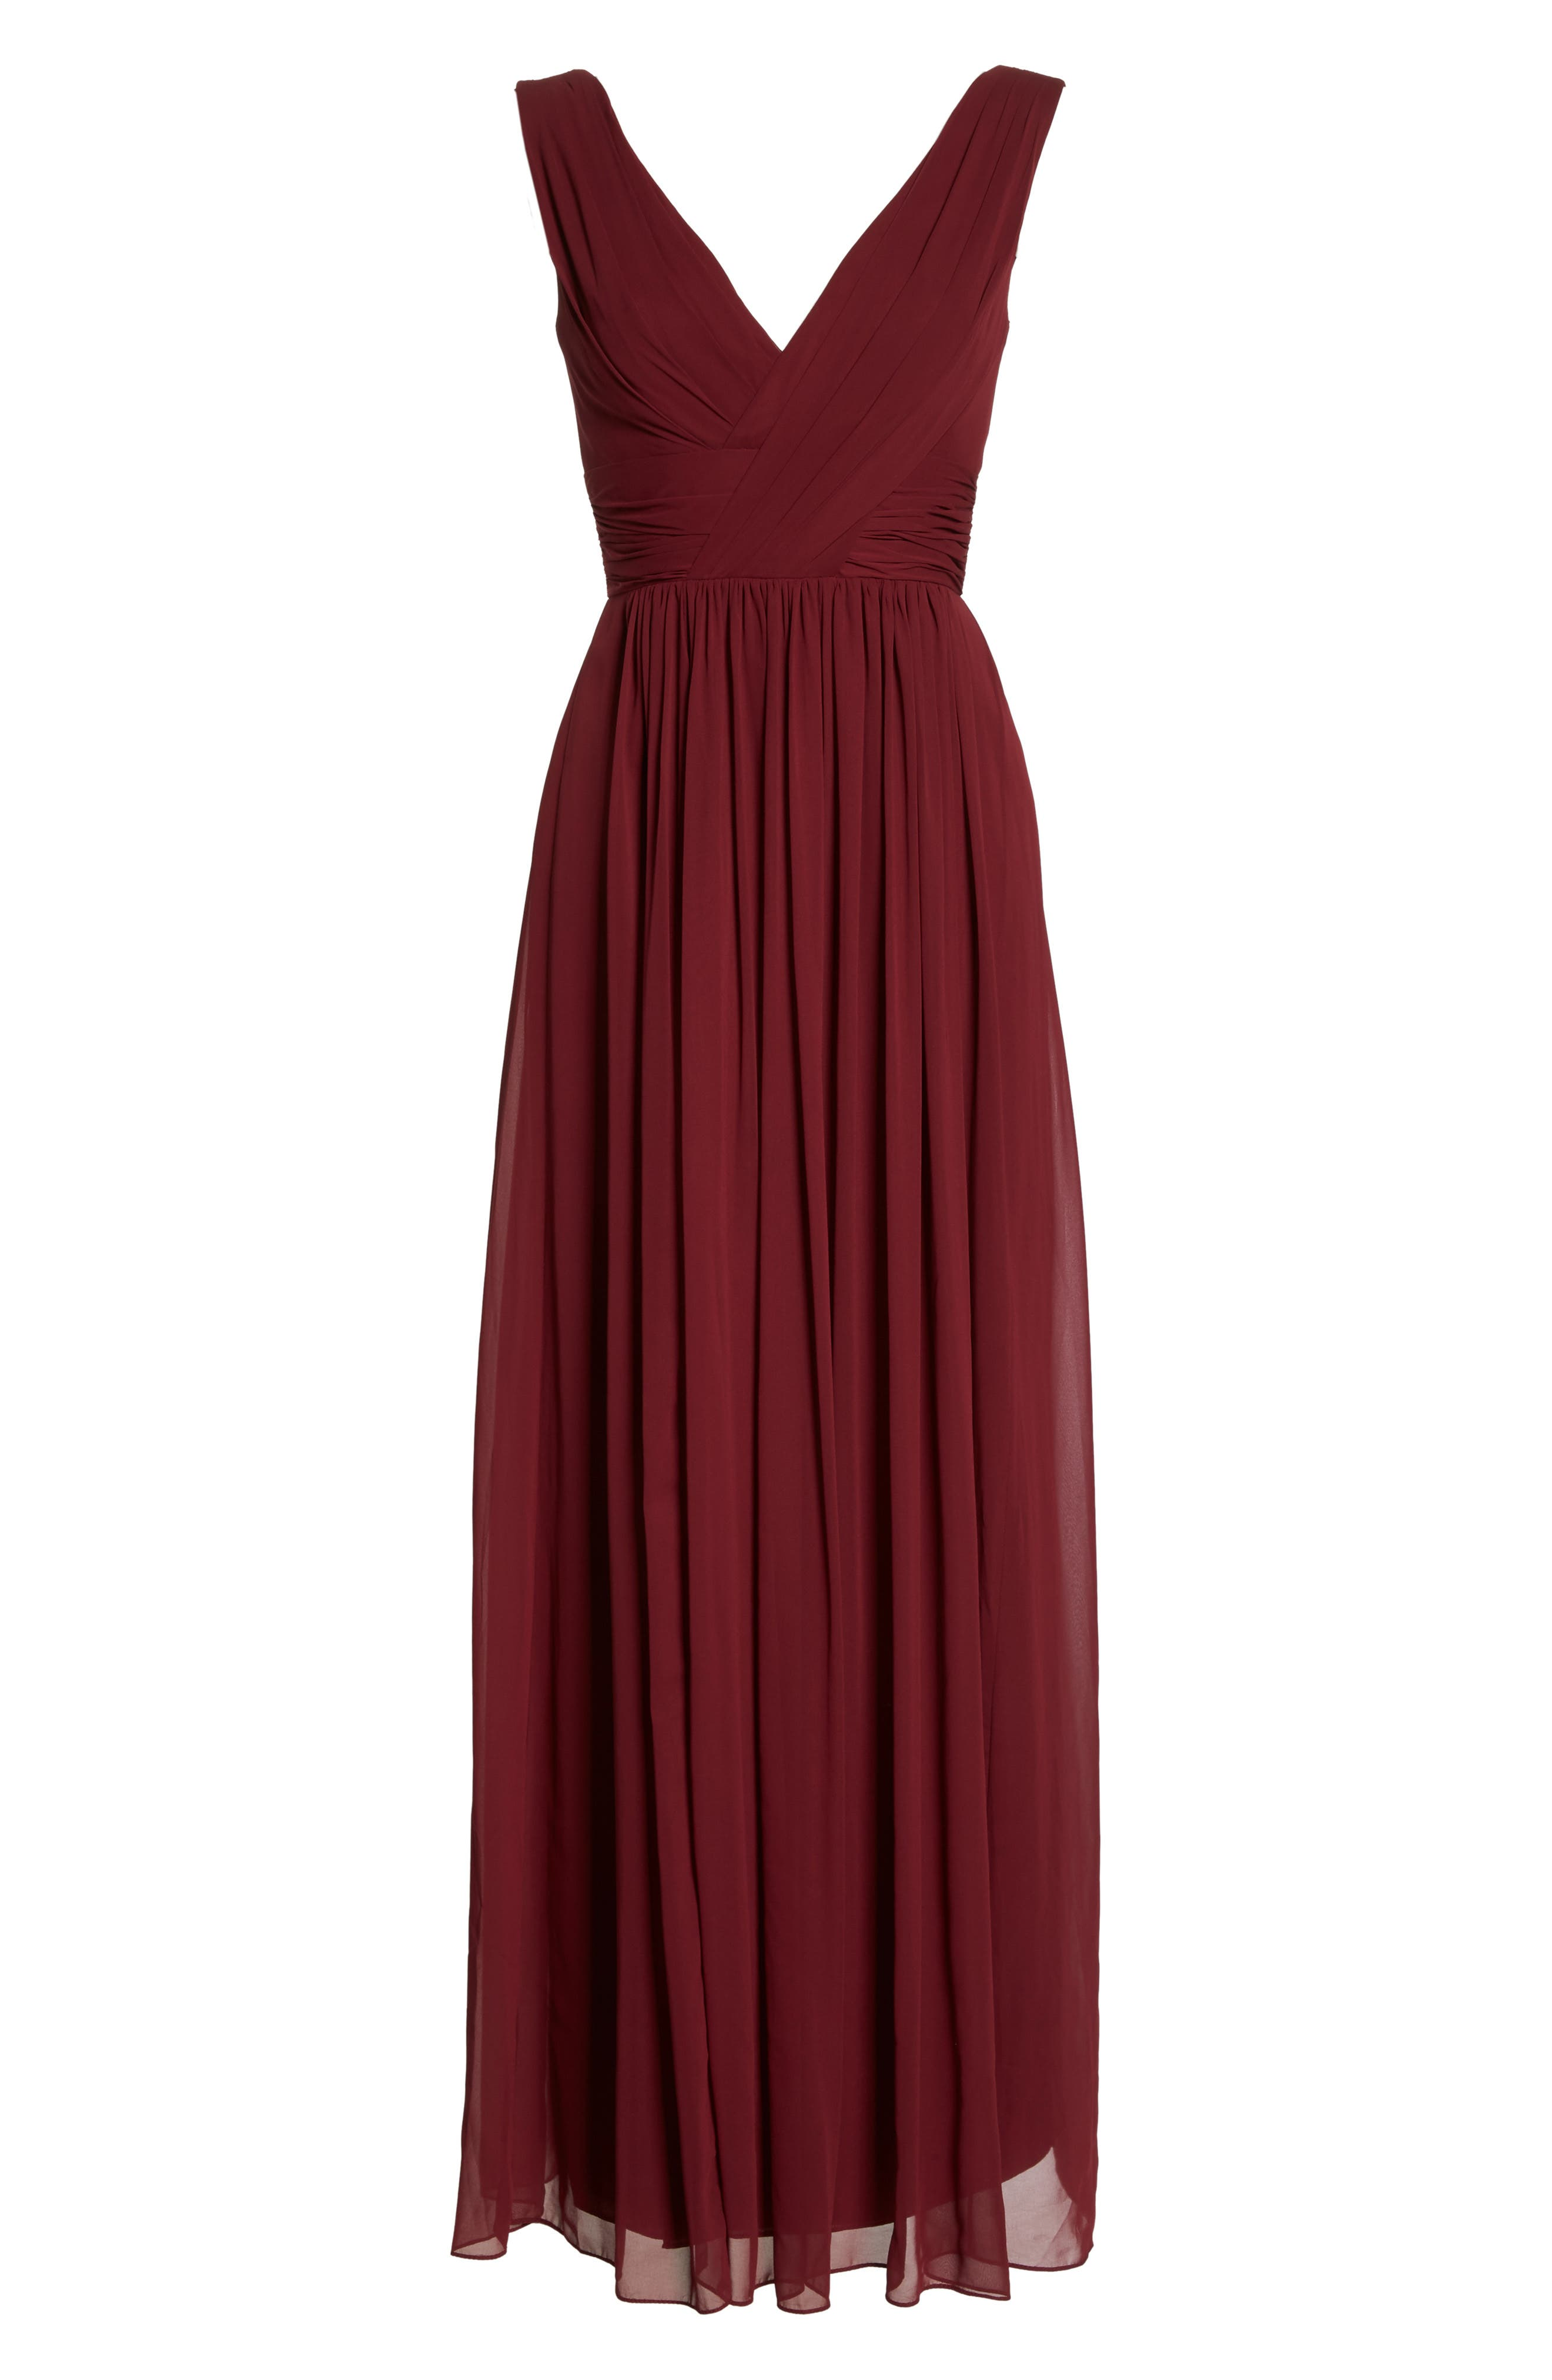 Dessy Collection Lux V-Neck Chiffon Gown, 8 (similar to 1) - Red